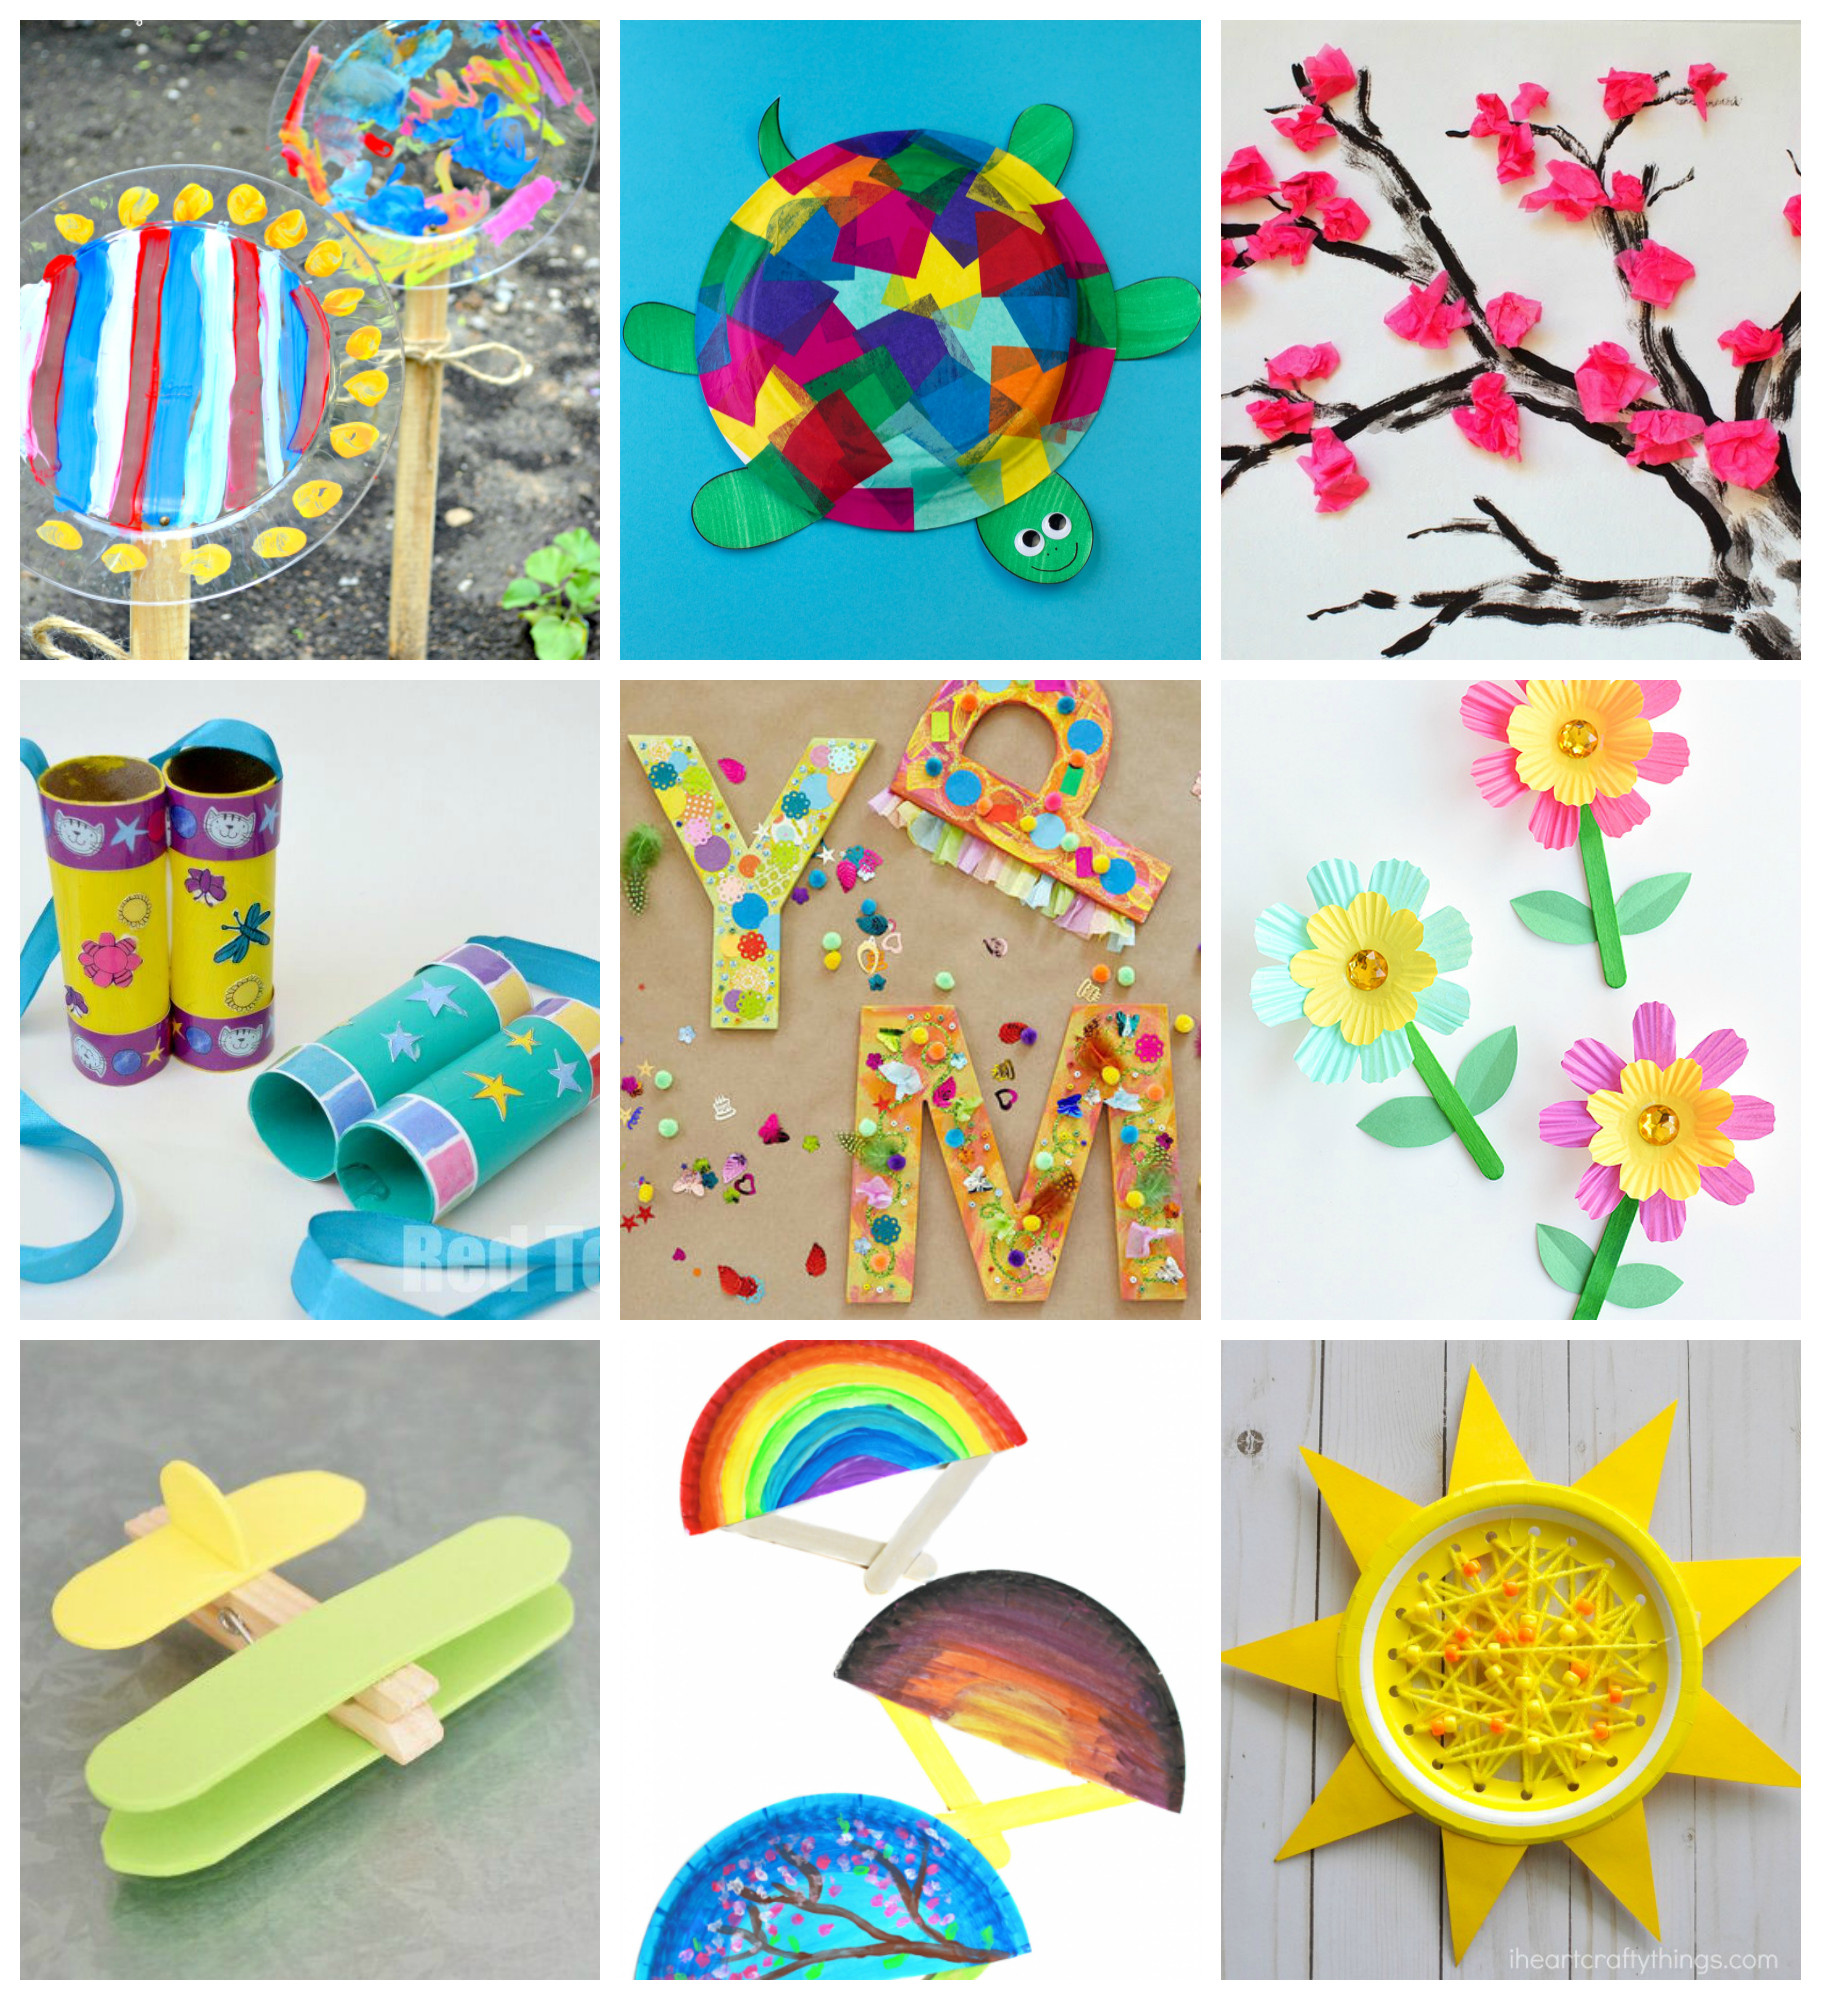 Simple Crafts For Kids  50 Quick & Easy Kids Crafts that ANYONE Can Make